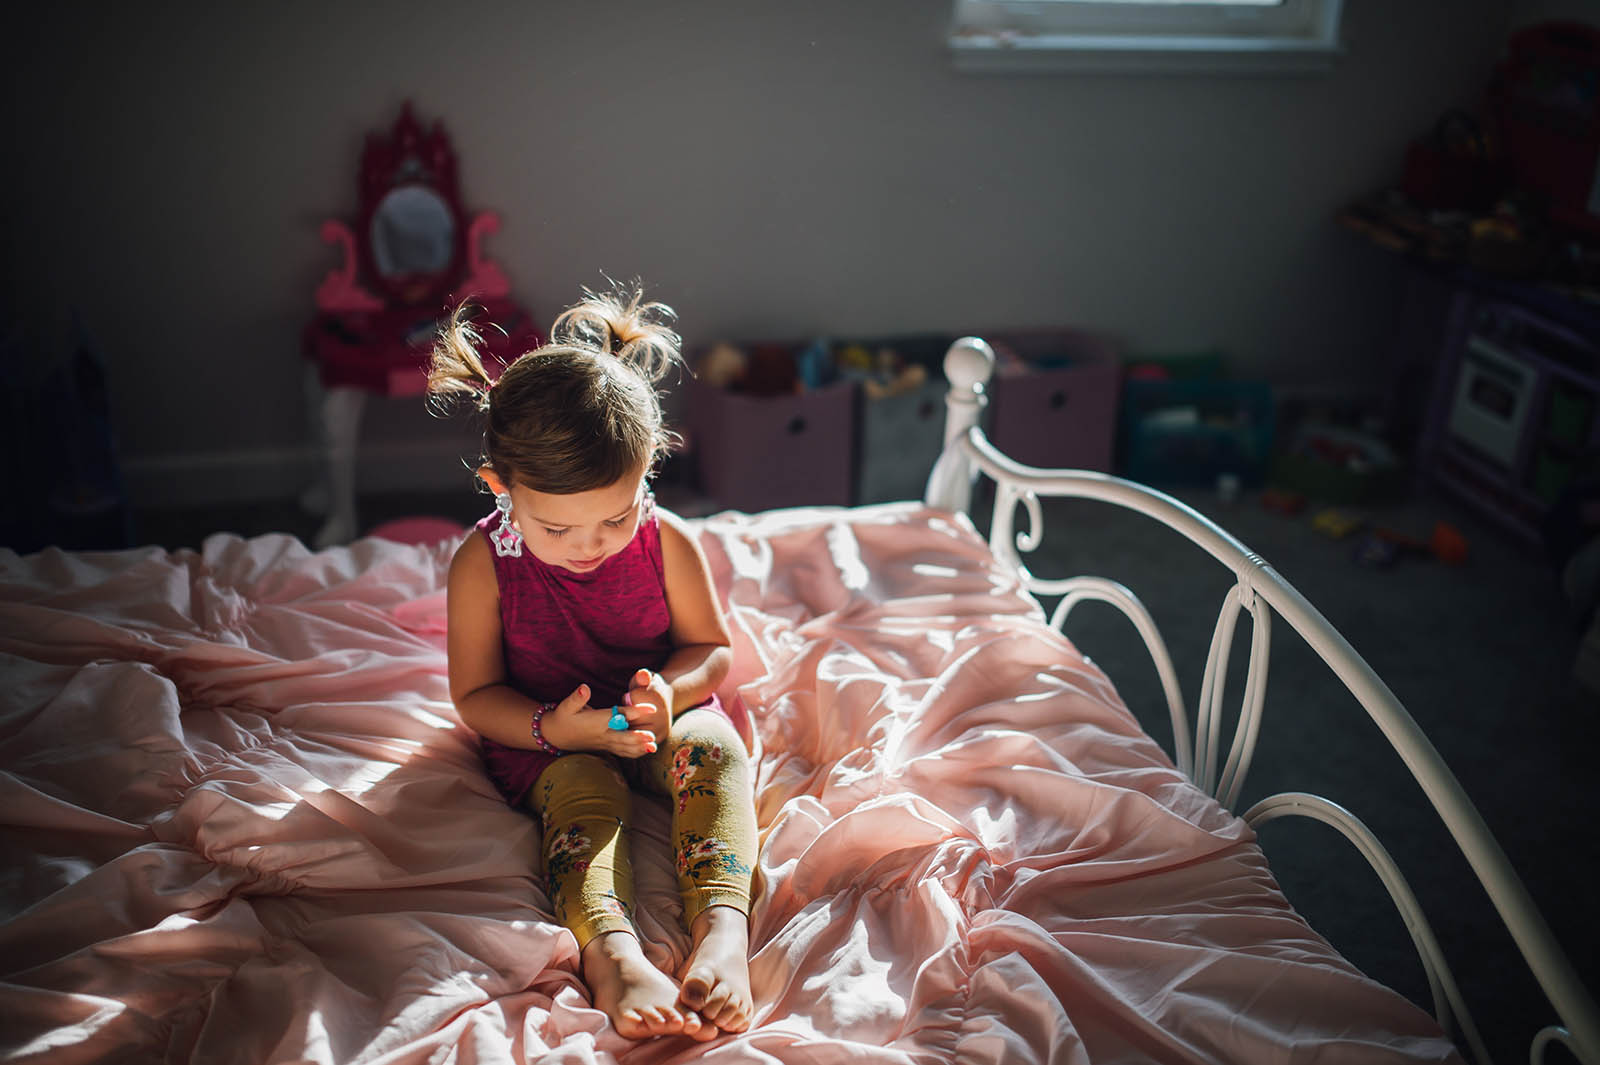 Girl sits on bed in pocket of window light